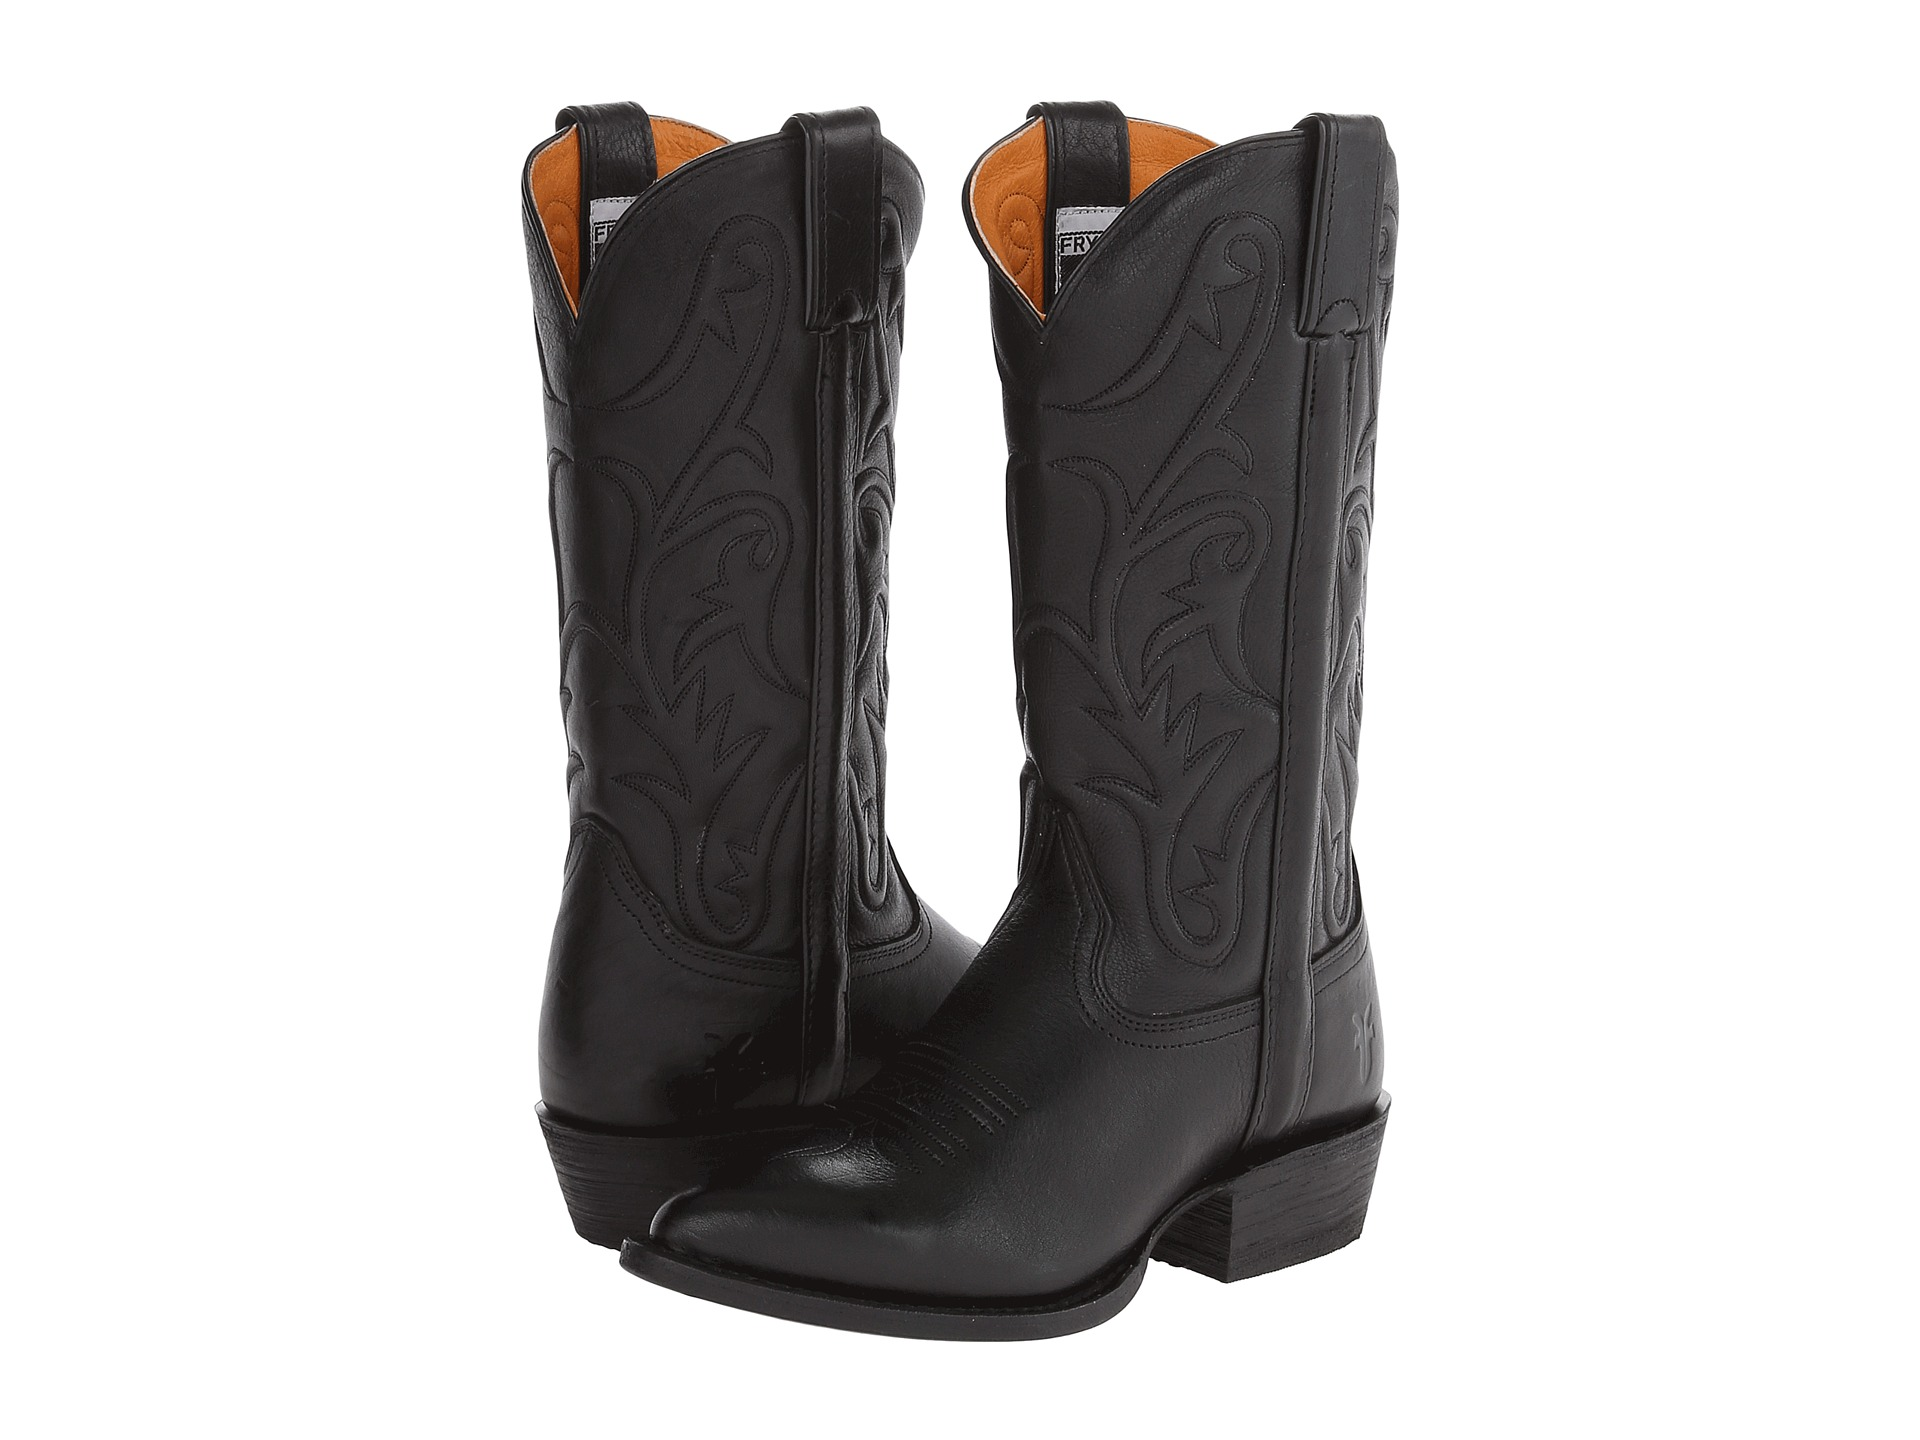 What To Wear When You're Keepin' It Country: Made in USA cowboy boots!